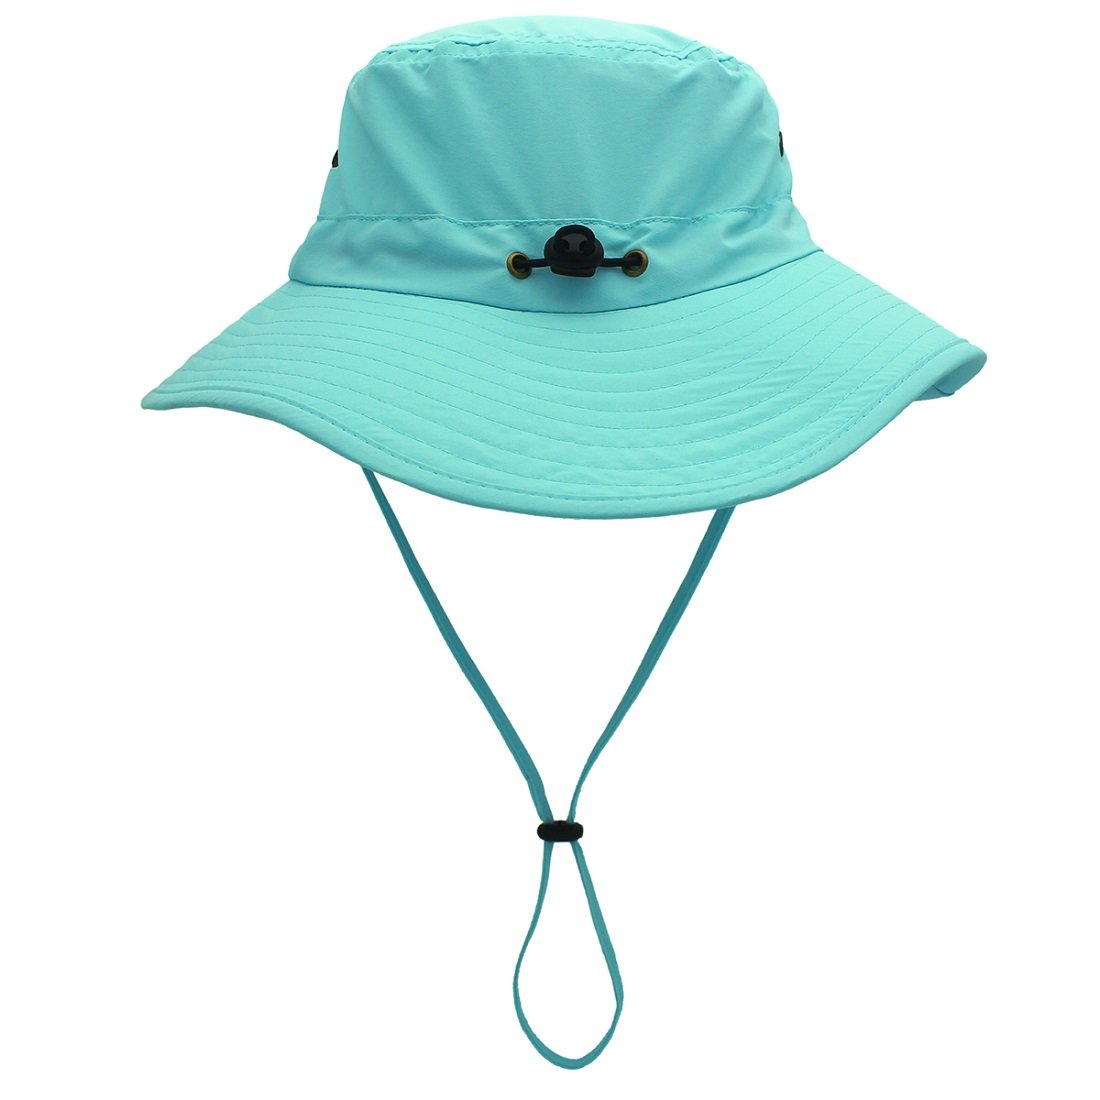 LLmoway Outdoor UPF50+ Summer Sun Cap Lightweight Packable Dry Fit Bora Boonie Hat with Cords AQU by LLmoway (Image #3)